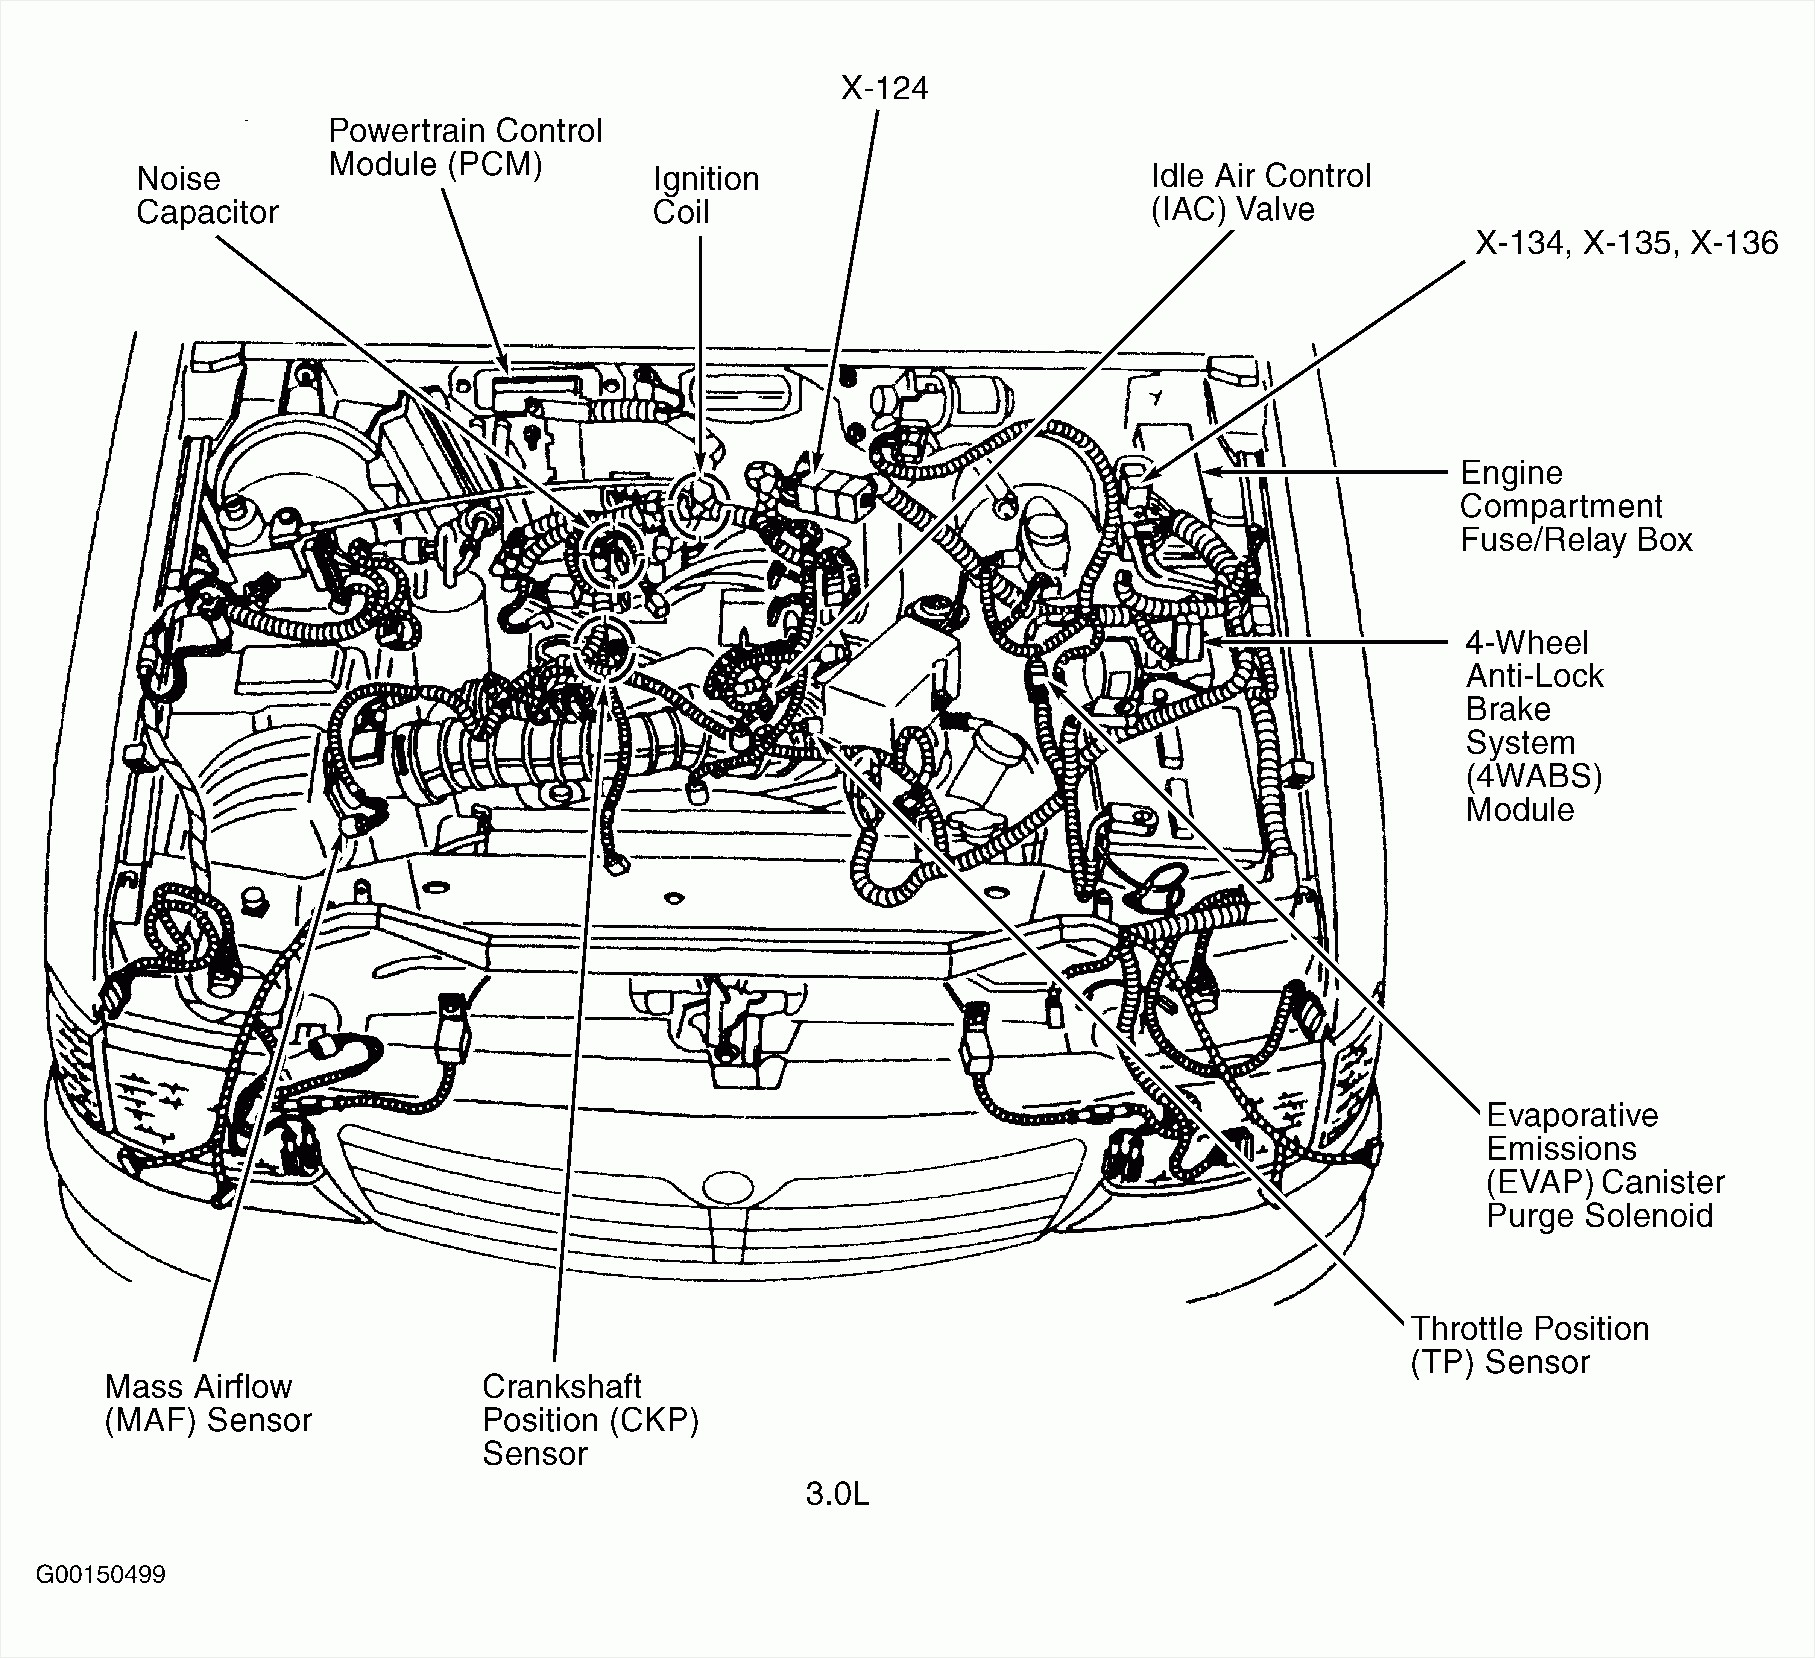 Toyota 3 0 V6 Engine Wiring Diagram on 2007 camry ac relay